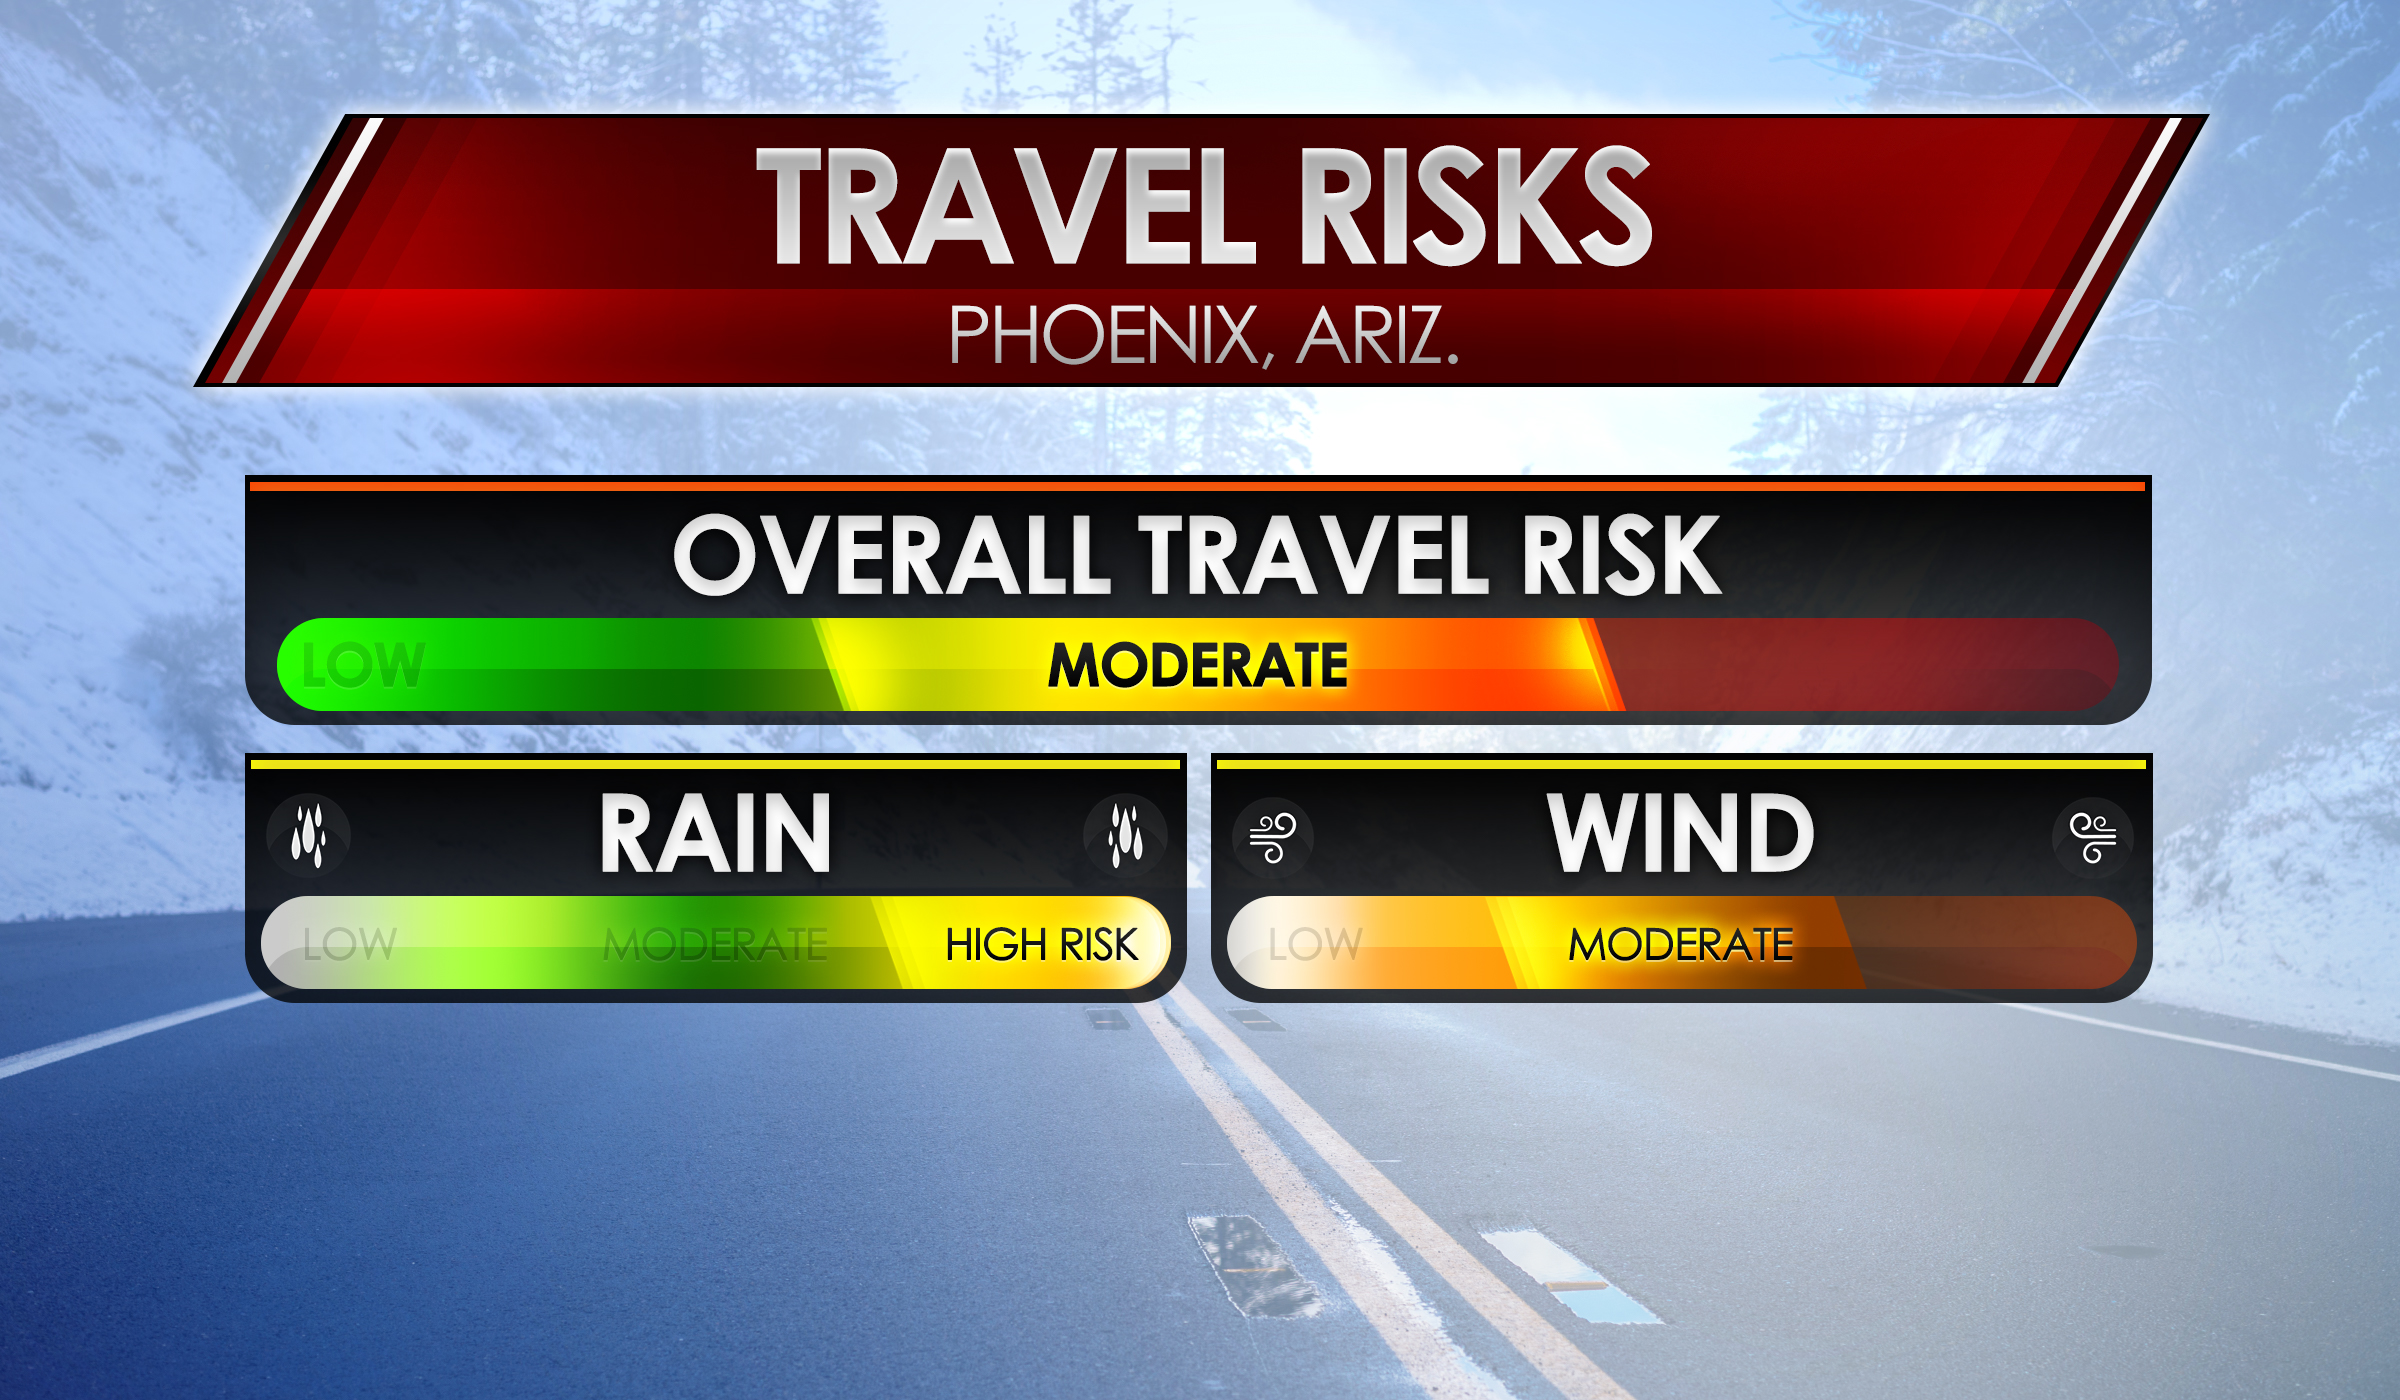 Travel Risk Phoenix